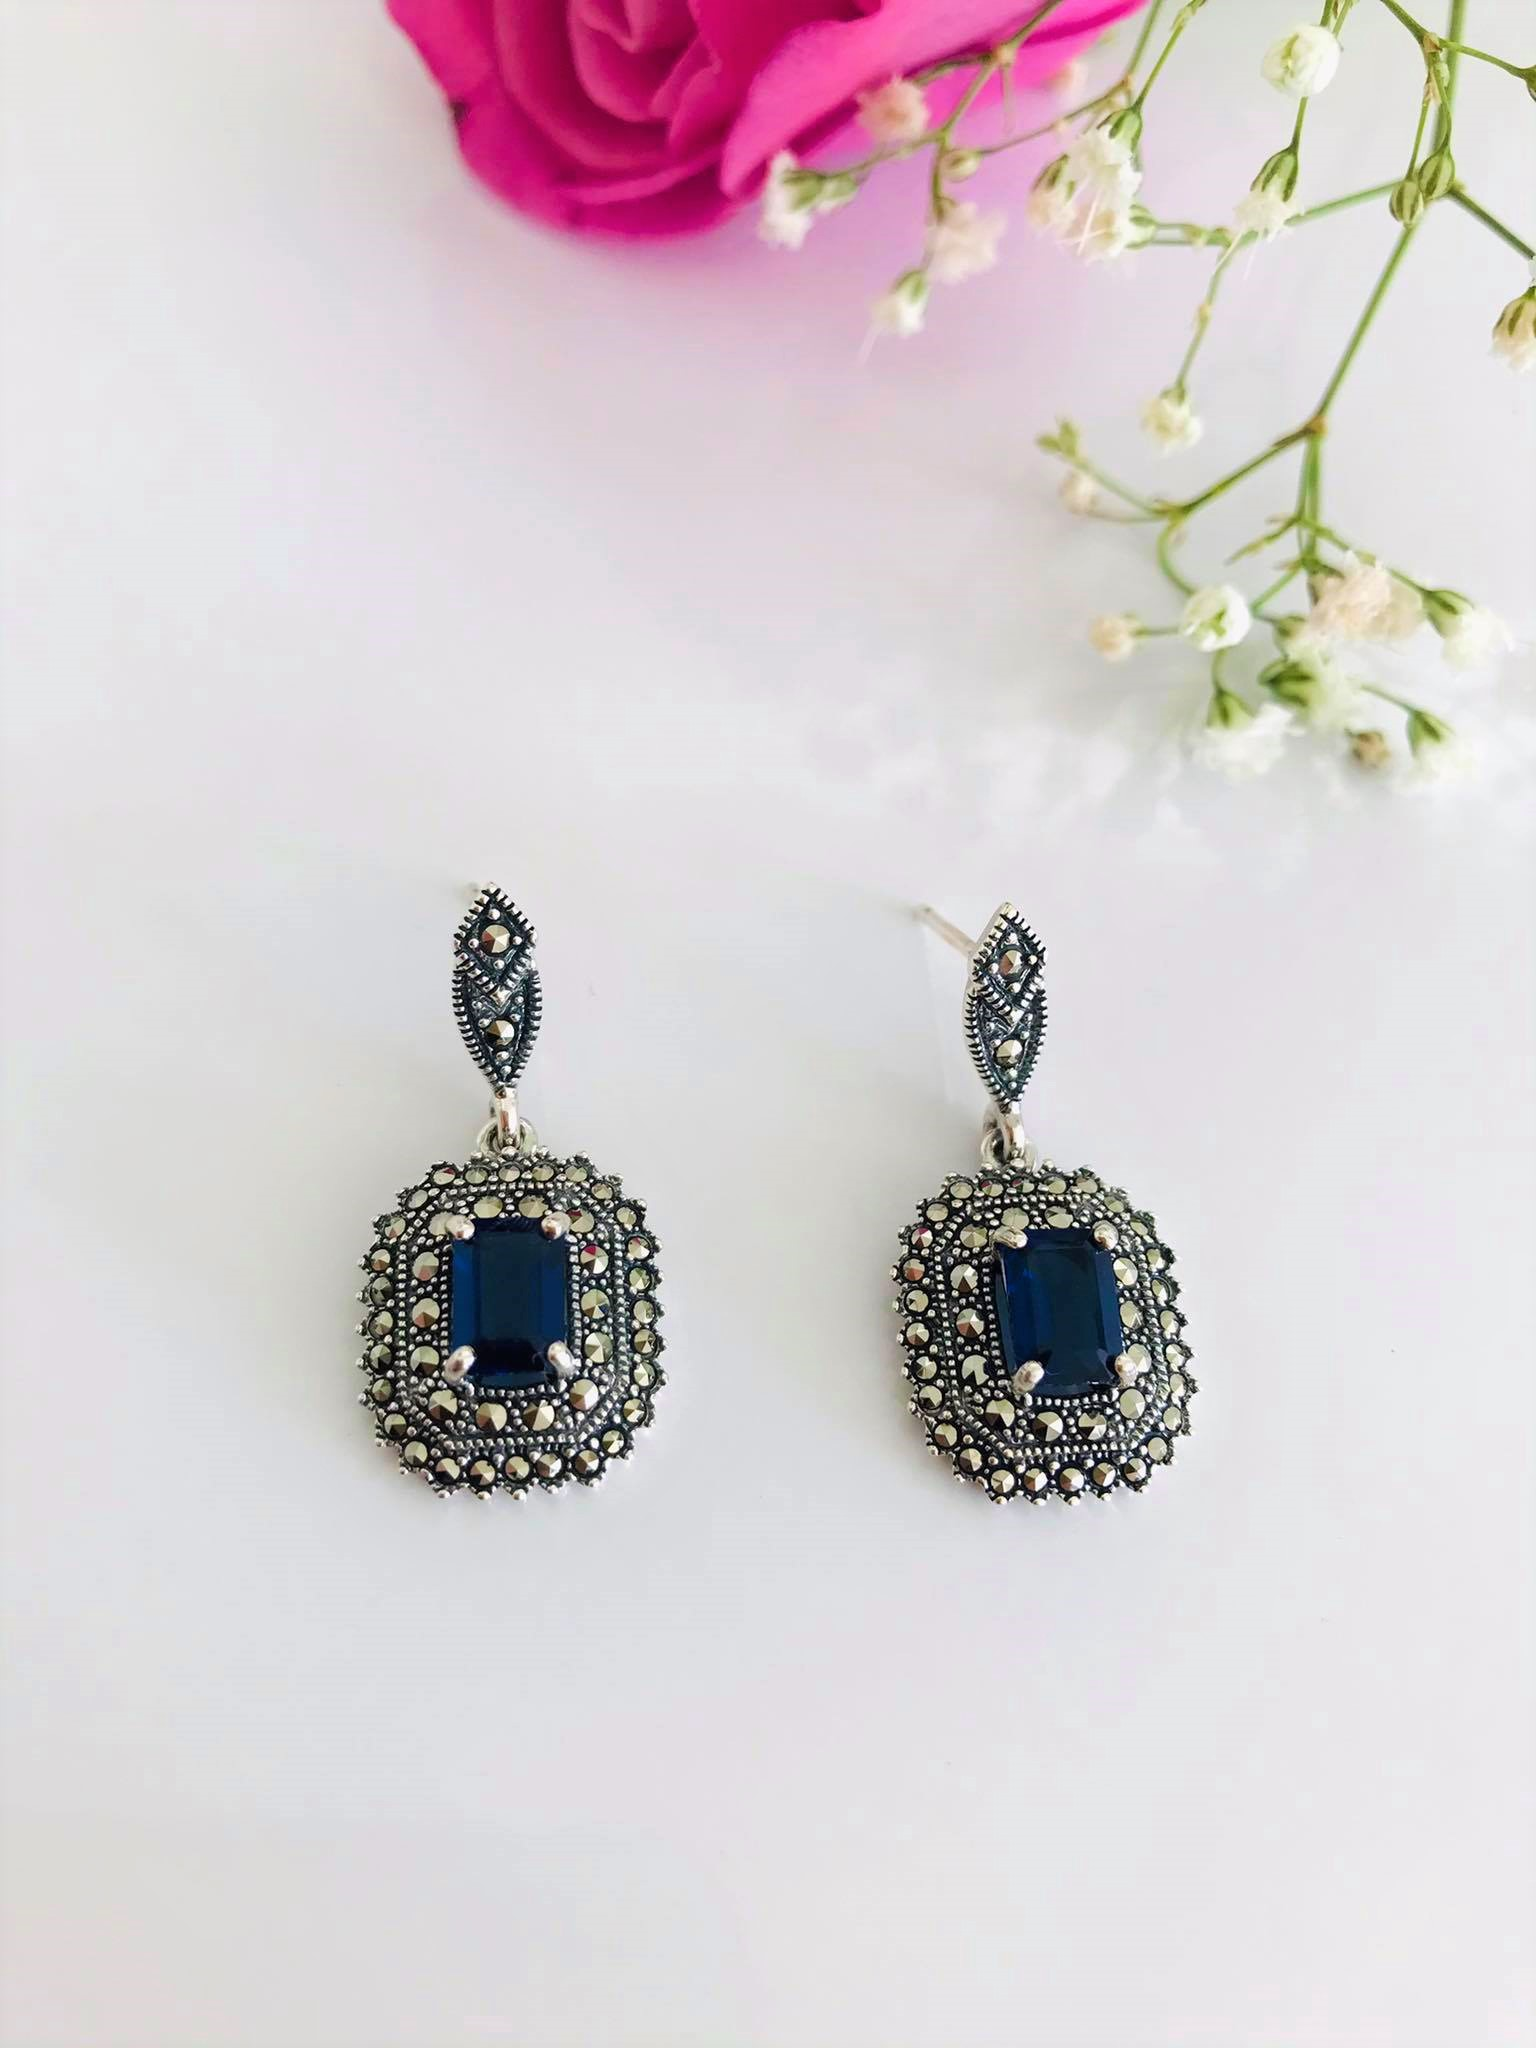 Emerald cut Sapphire with Double Halo Swiss Marcasite Earrings Image